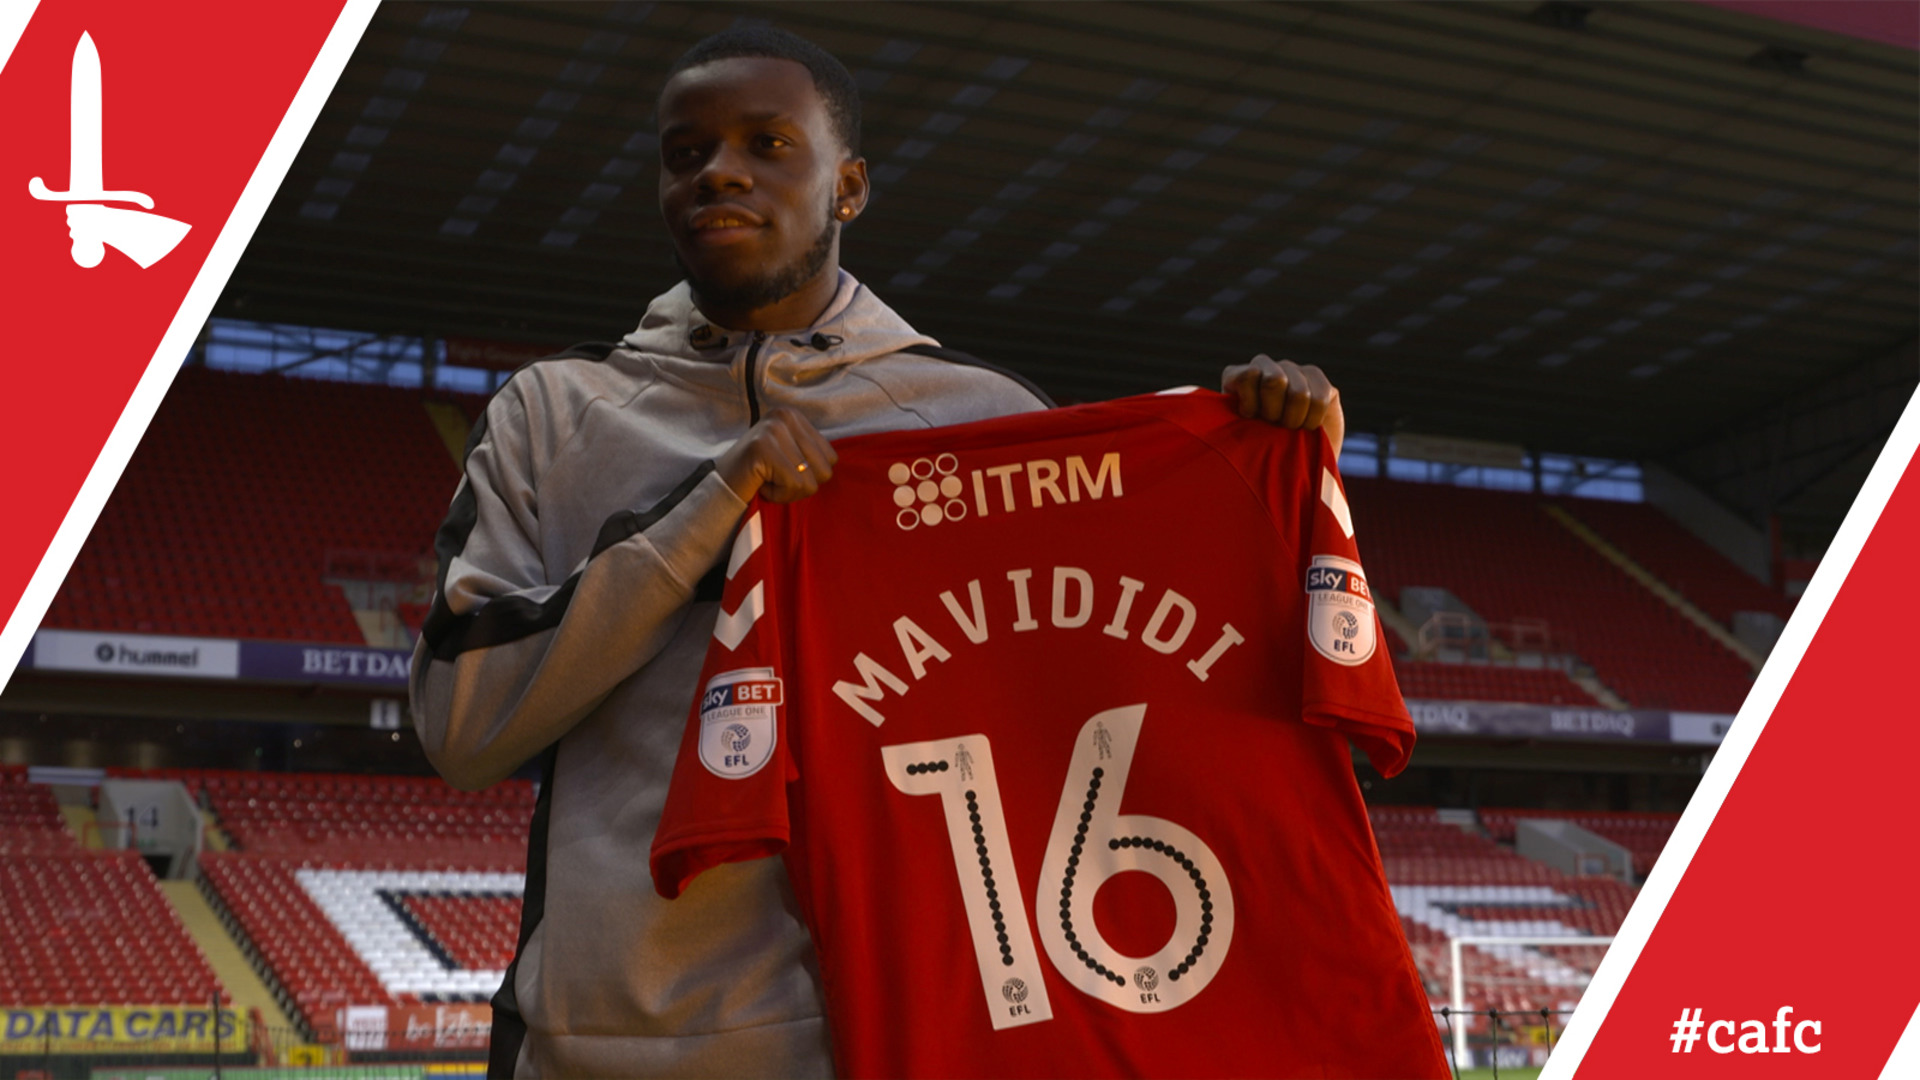 Stephy Mavididi signs for Charlton